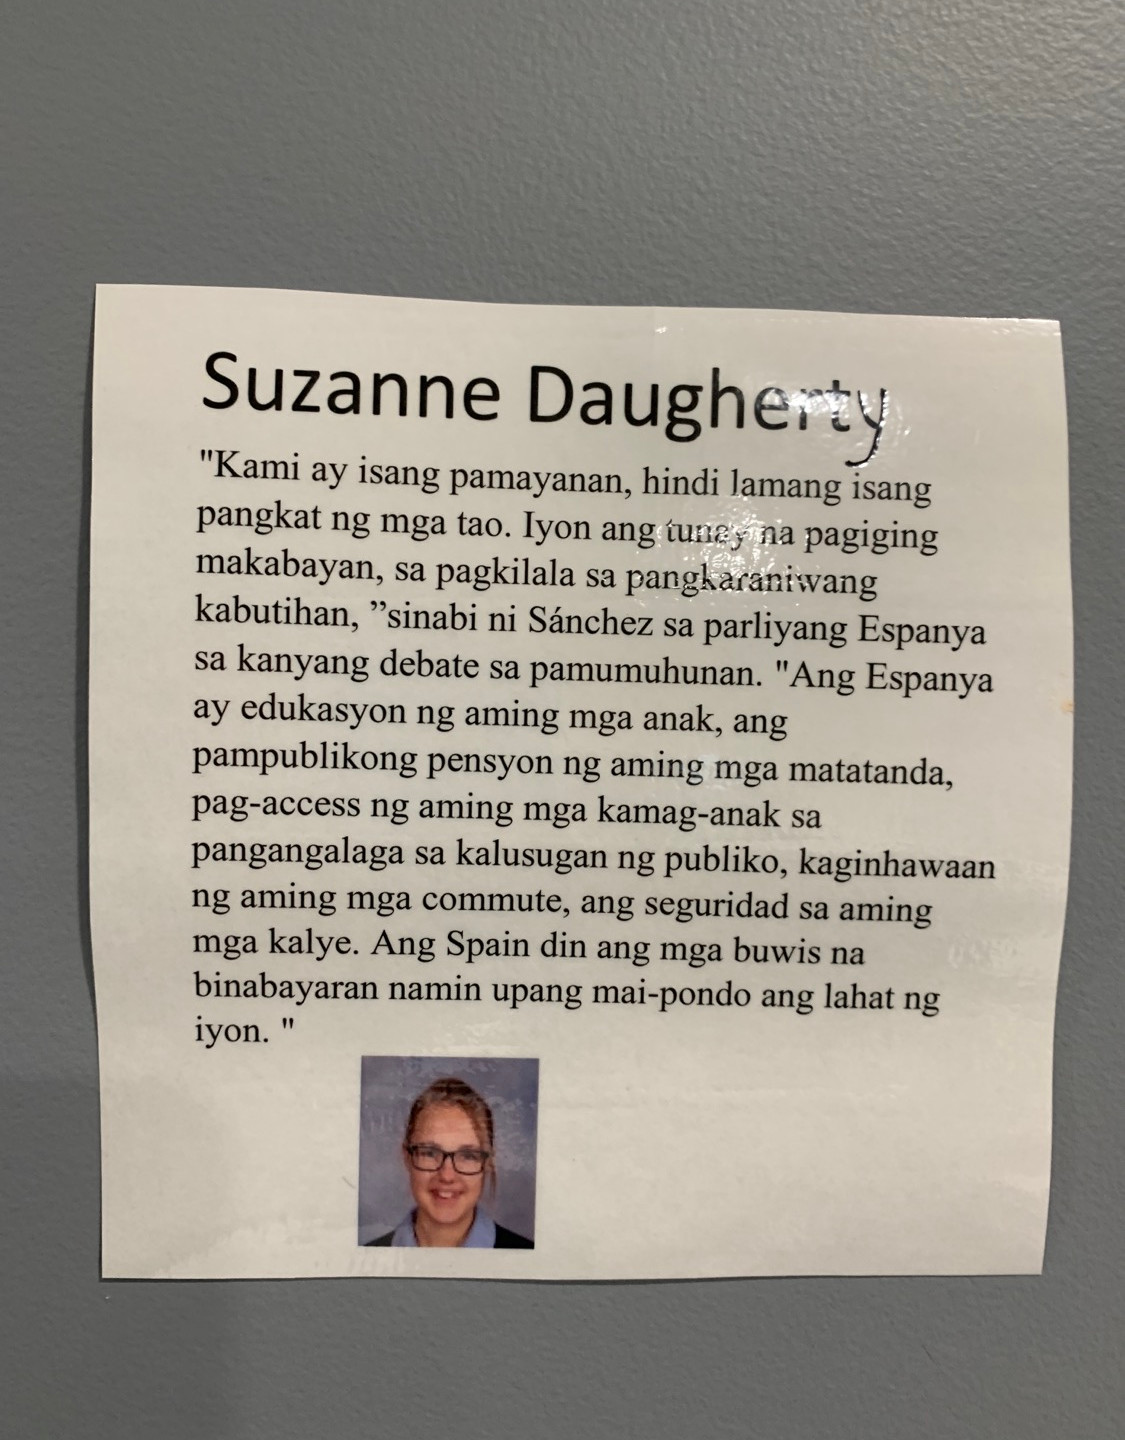 Suzanne Daugherty